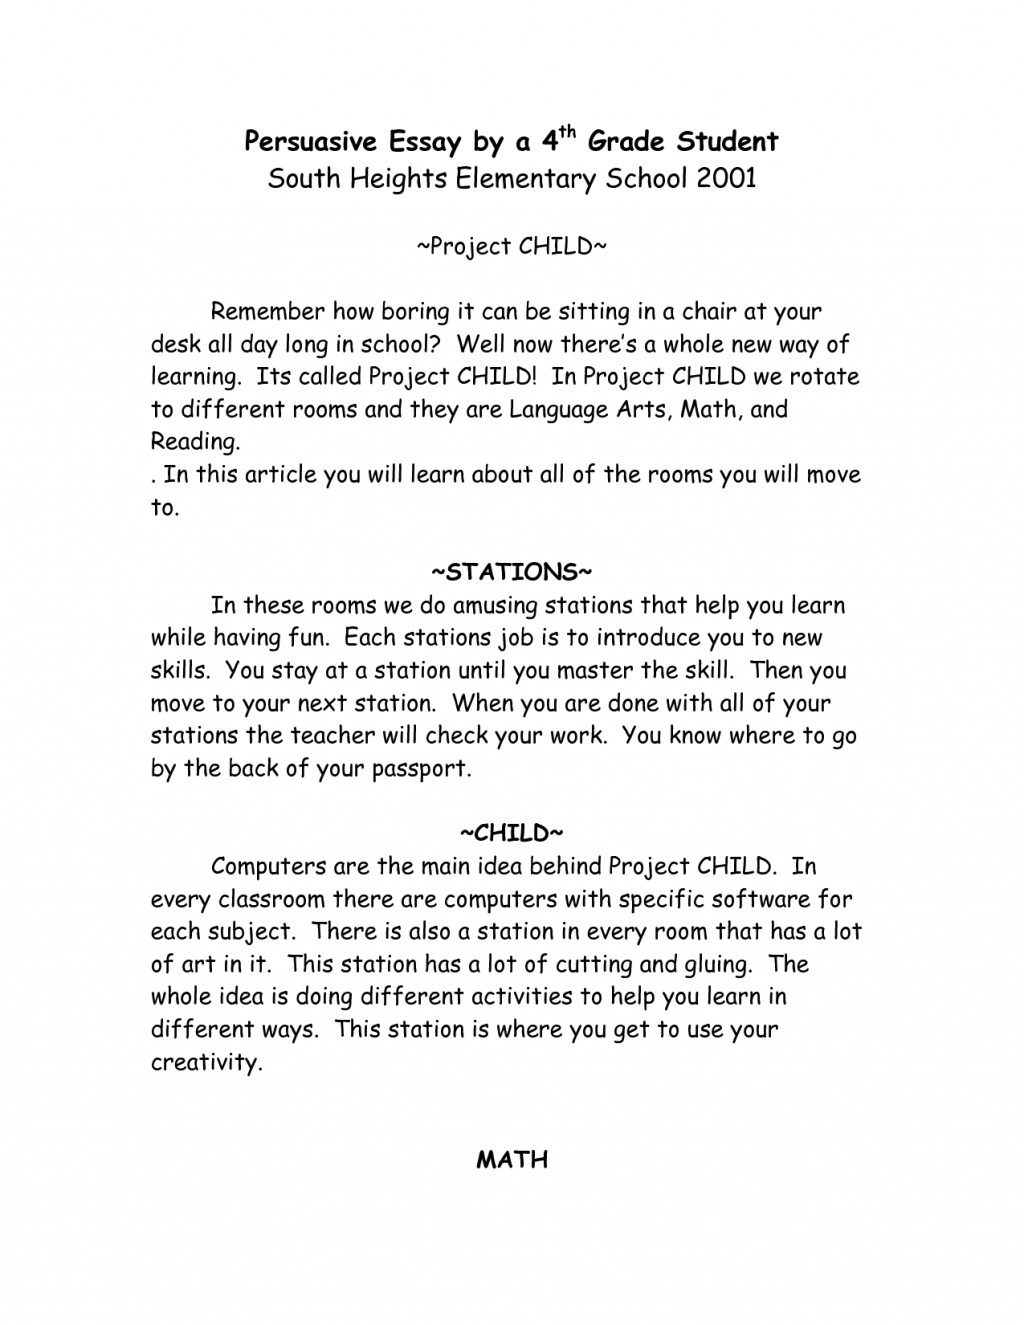 014 How To Start An Essay 2nmmxqusgx Amazing Analysis On A Book Ways With Question About Two Books Large